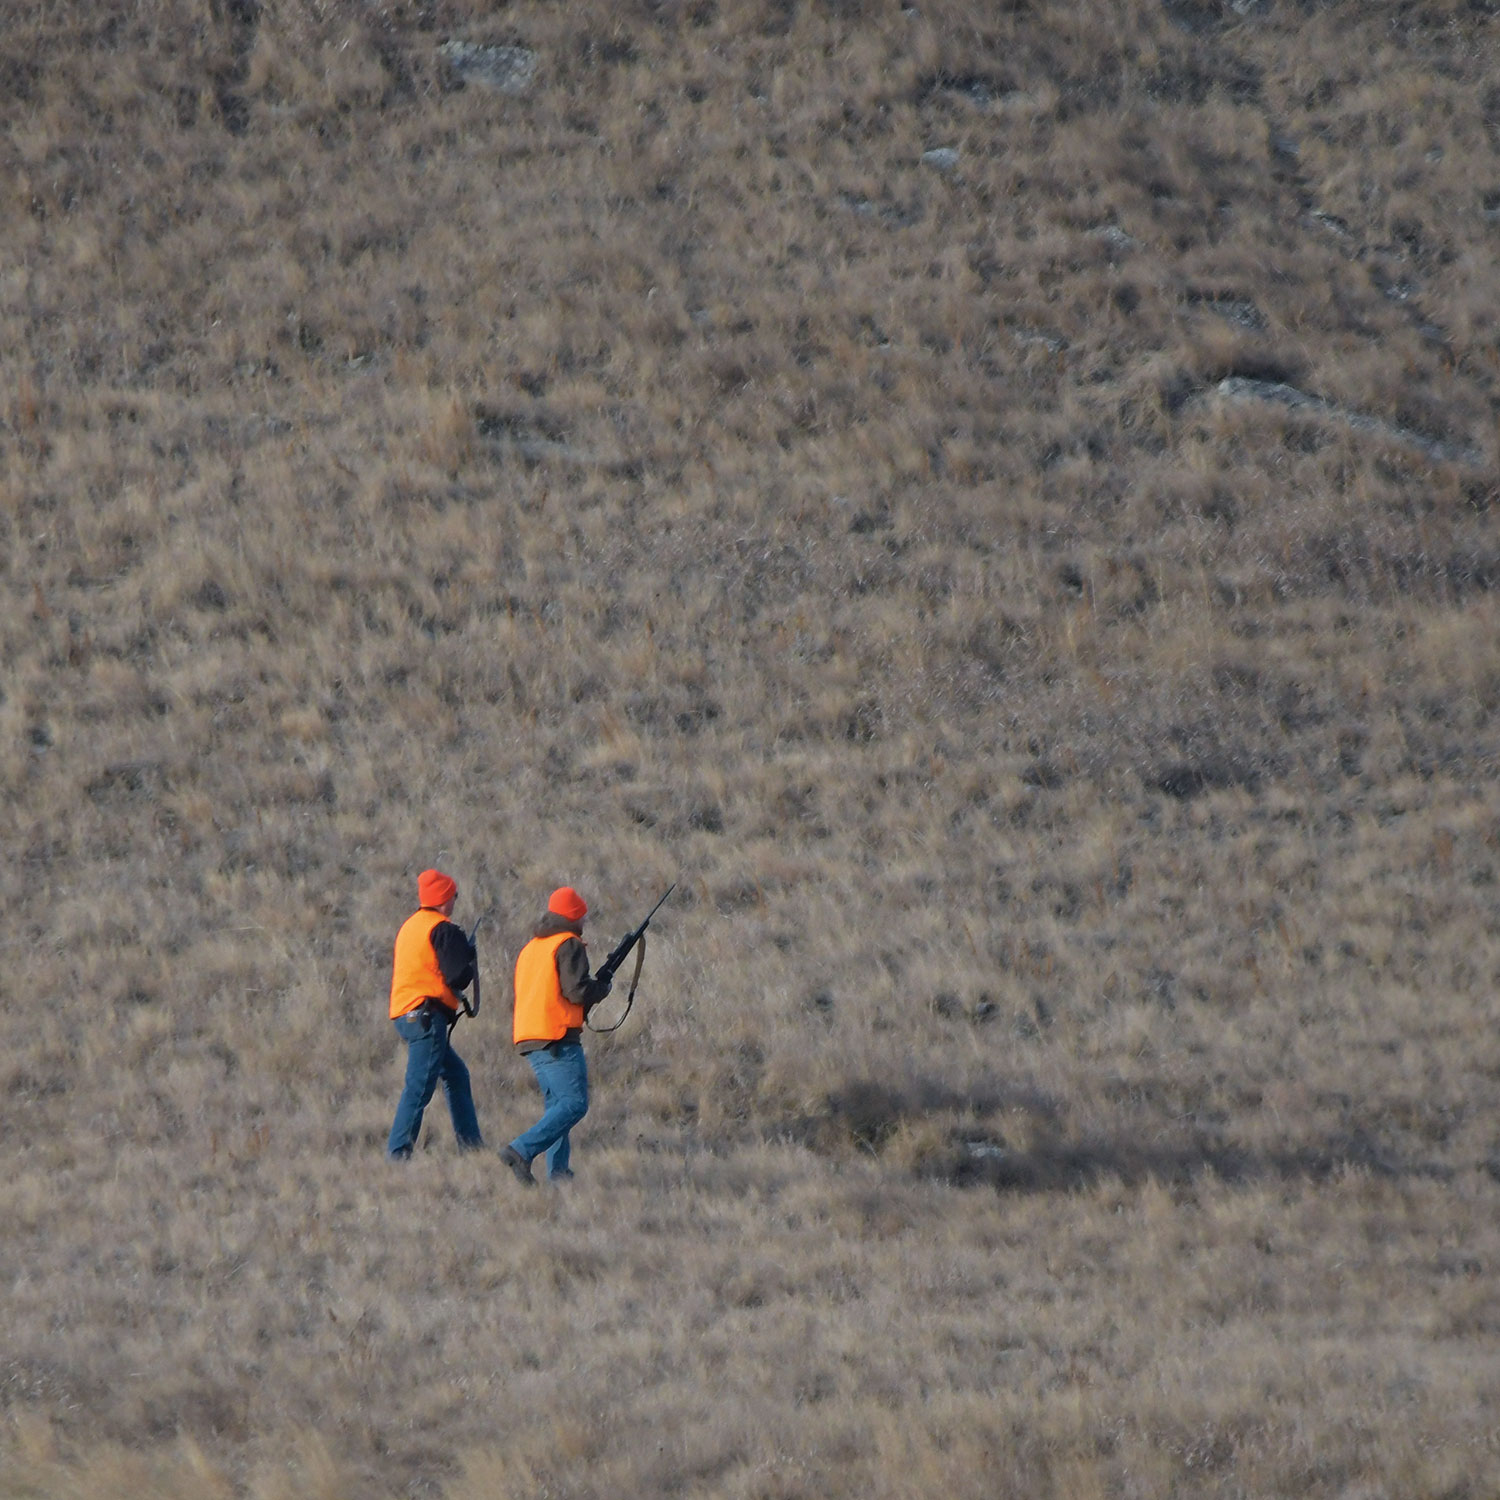 Two deer hunters walking on prairie